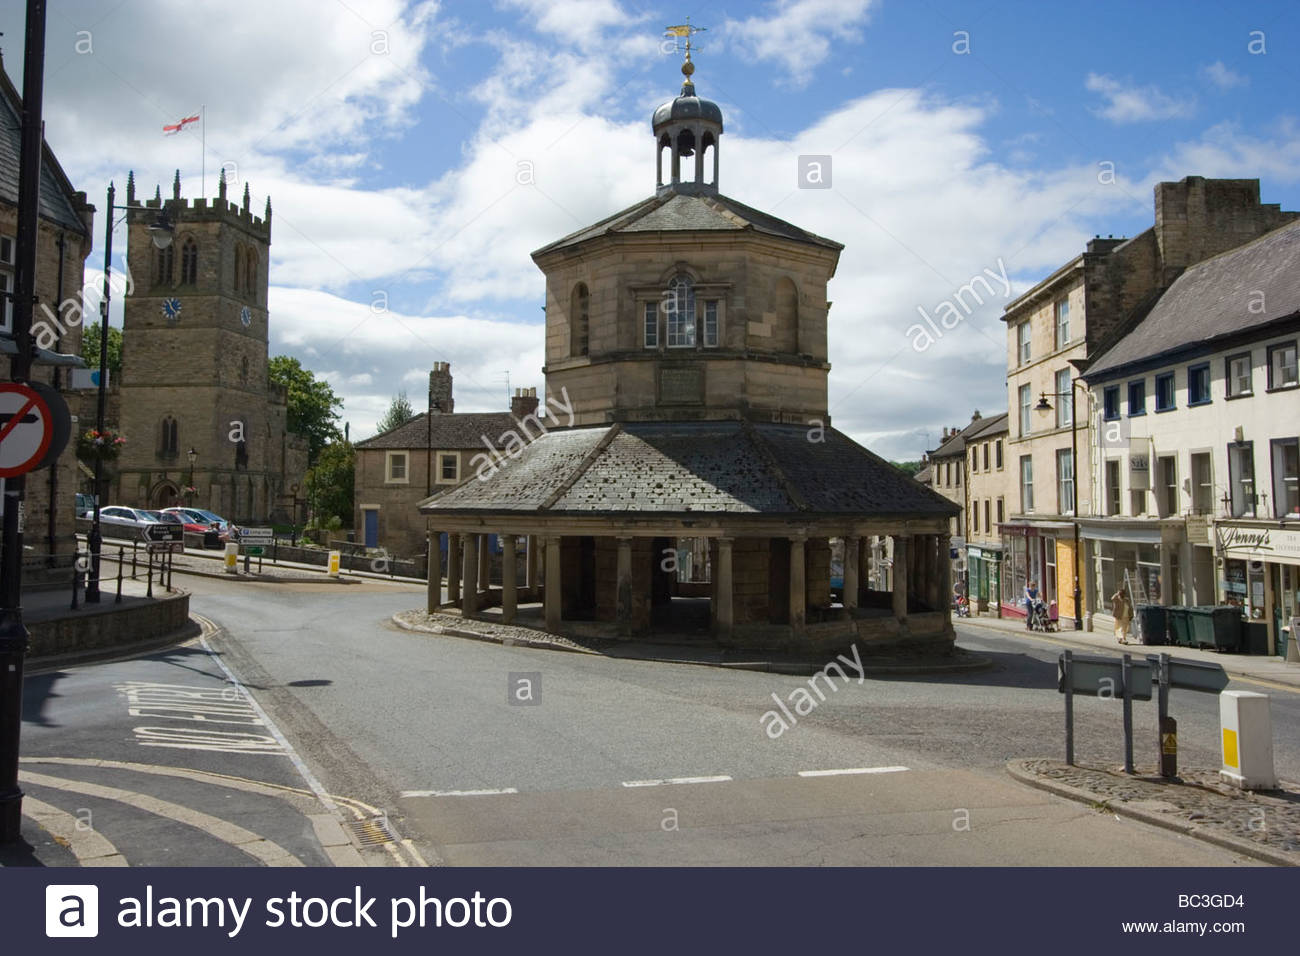 Old Market Cross in Barnard Castle in County Durham England - Stock Image